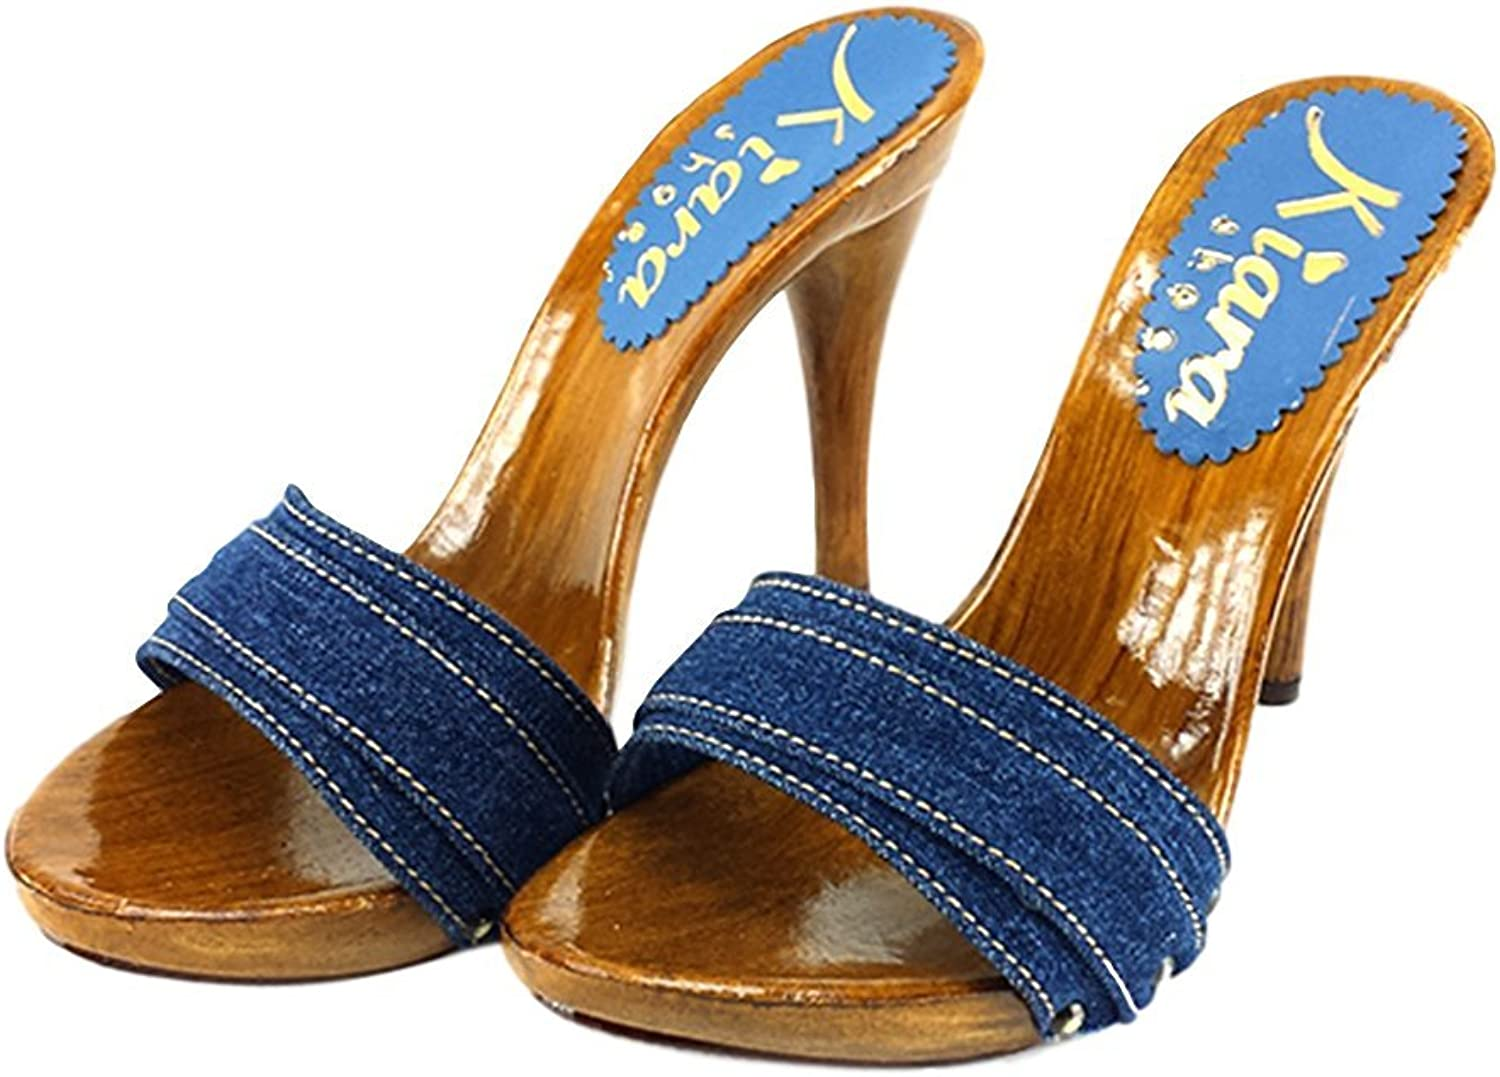 Kiara shoes Denim high Heel Clogs Heel 12 - KM7101 Denim